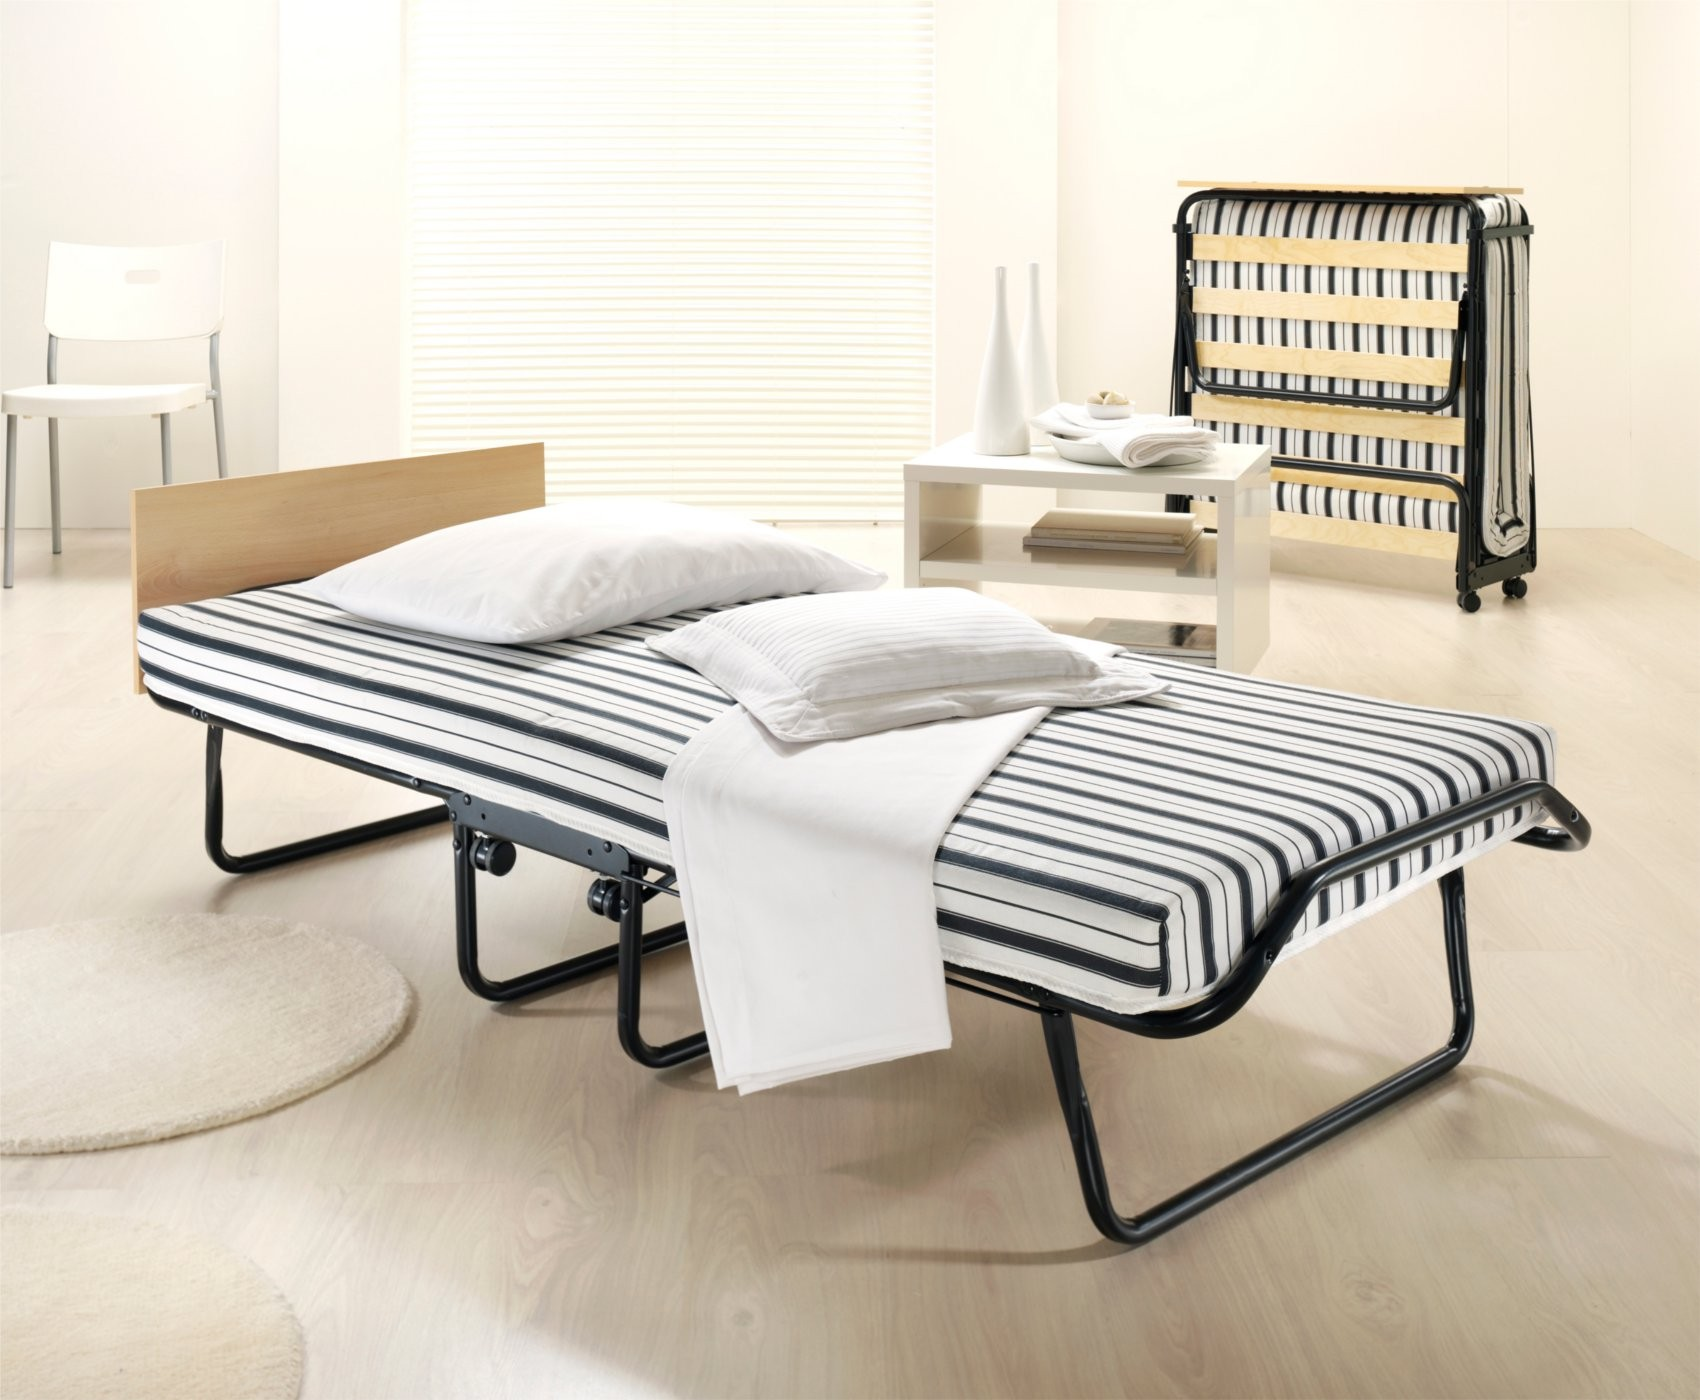 Folding Bed With Striped Mattres And White Pillows Are Perfect For Guest Bed  Solution. Guest Bed Solutions Ideas   HomesFeed